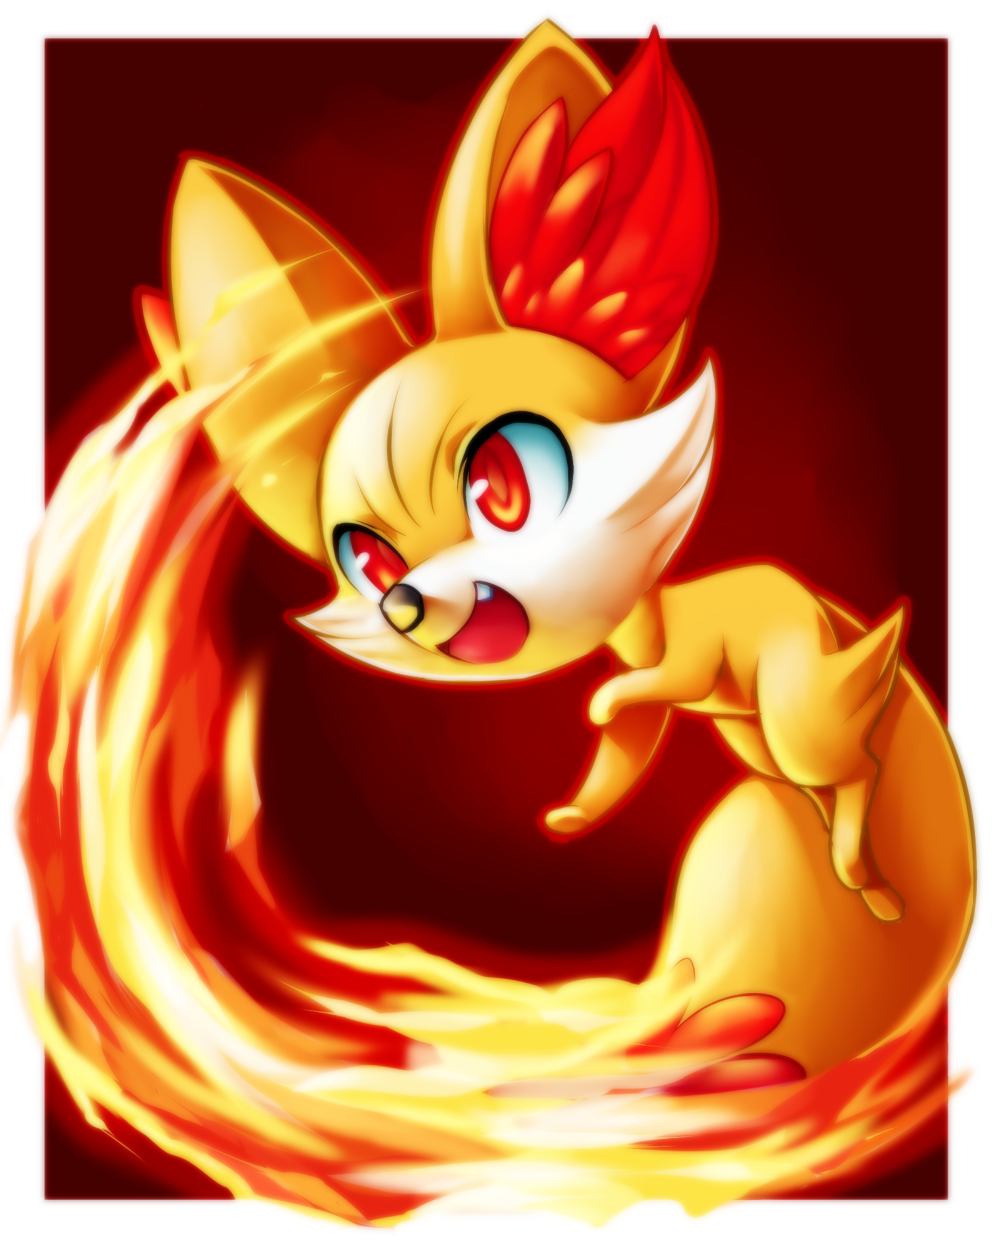 BURN BABY BURN by Centchi